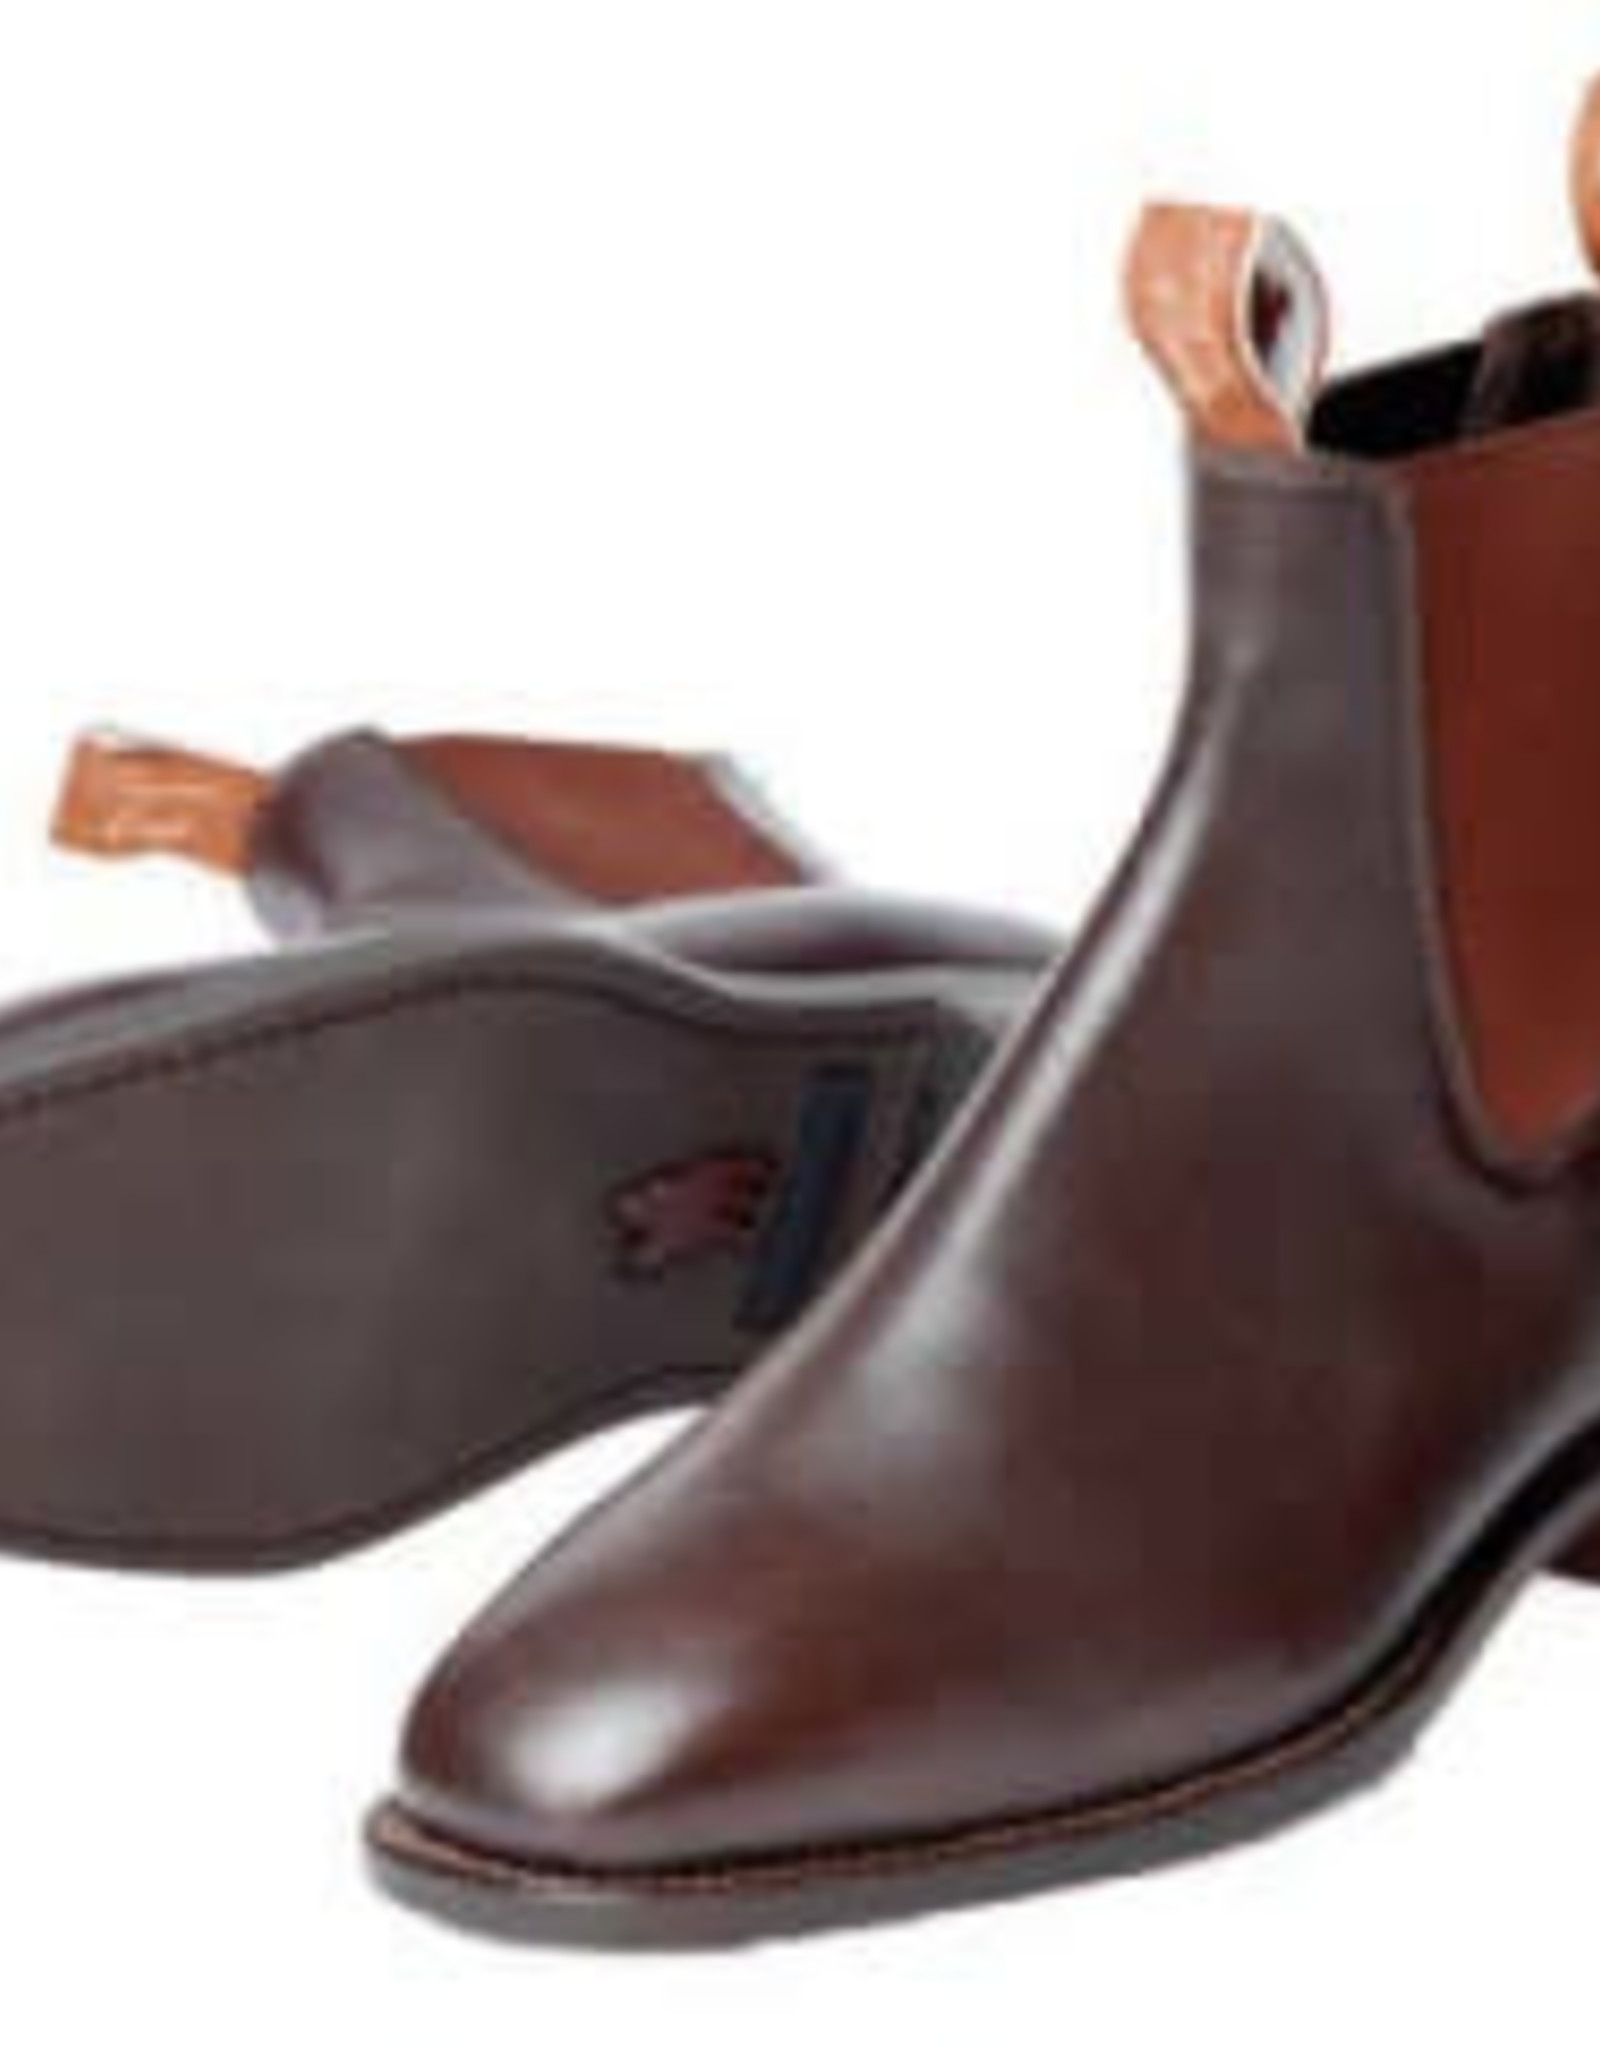 Thomas Cook Thomas Cook Trentham Women's Leather Sole Boots - Chestnut - Size 9